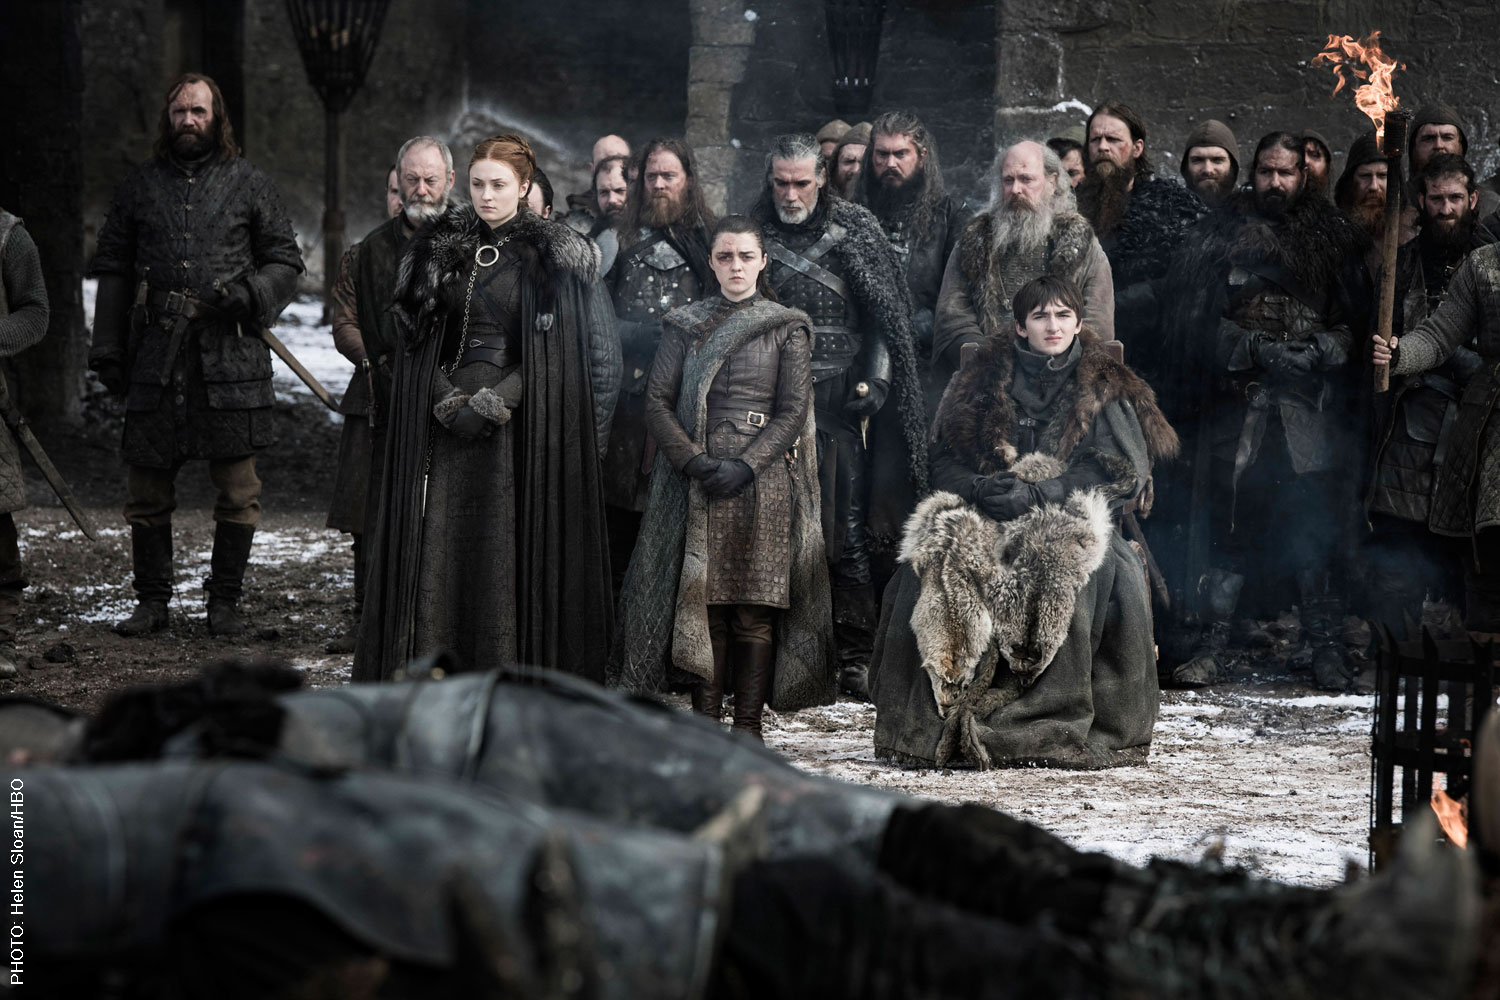 The Game of Thrones cast in Season 3, Episode 4